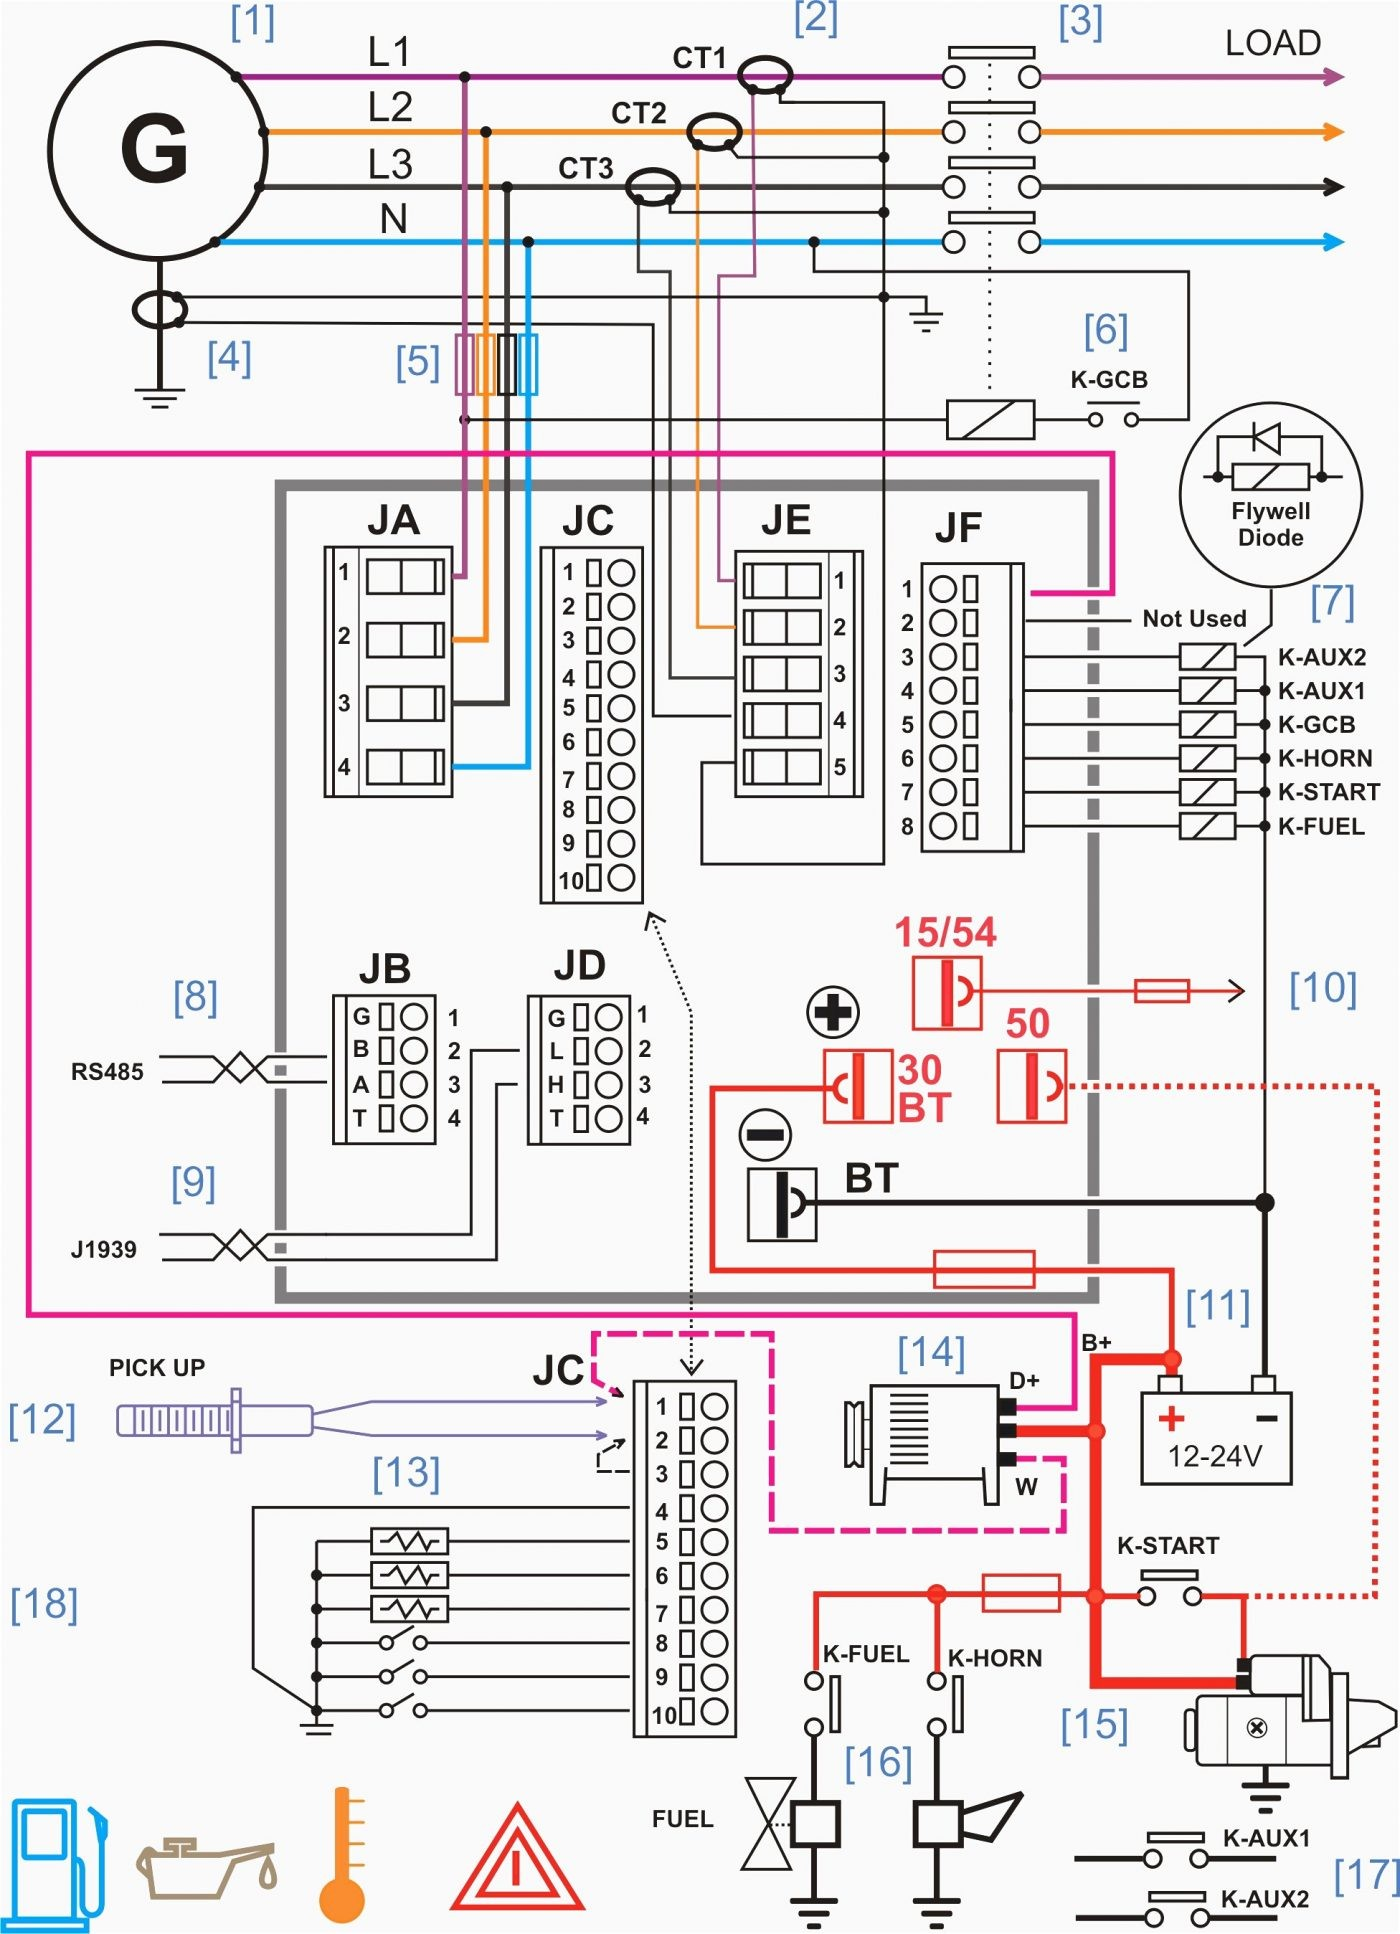 Dodge Stratus Wiring Diagram Durango Fuse Box As Well 05 Schematic 1934 Diagrams Of